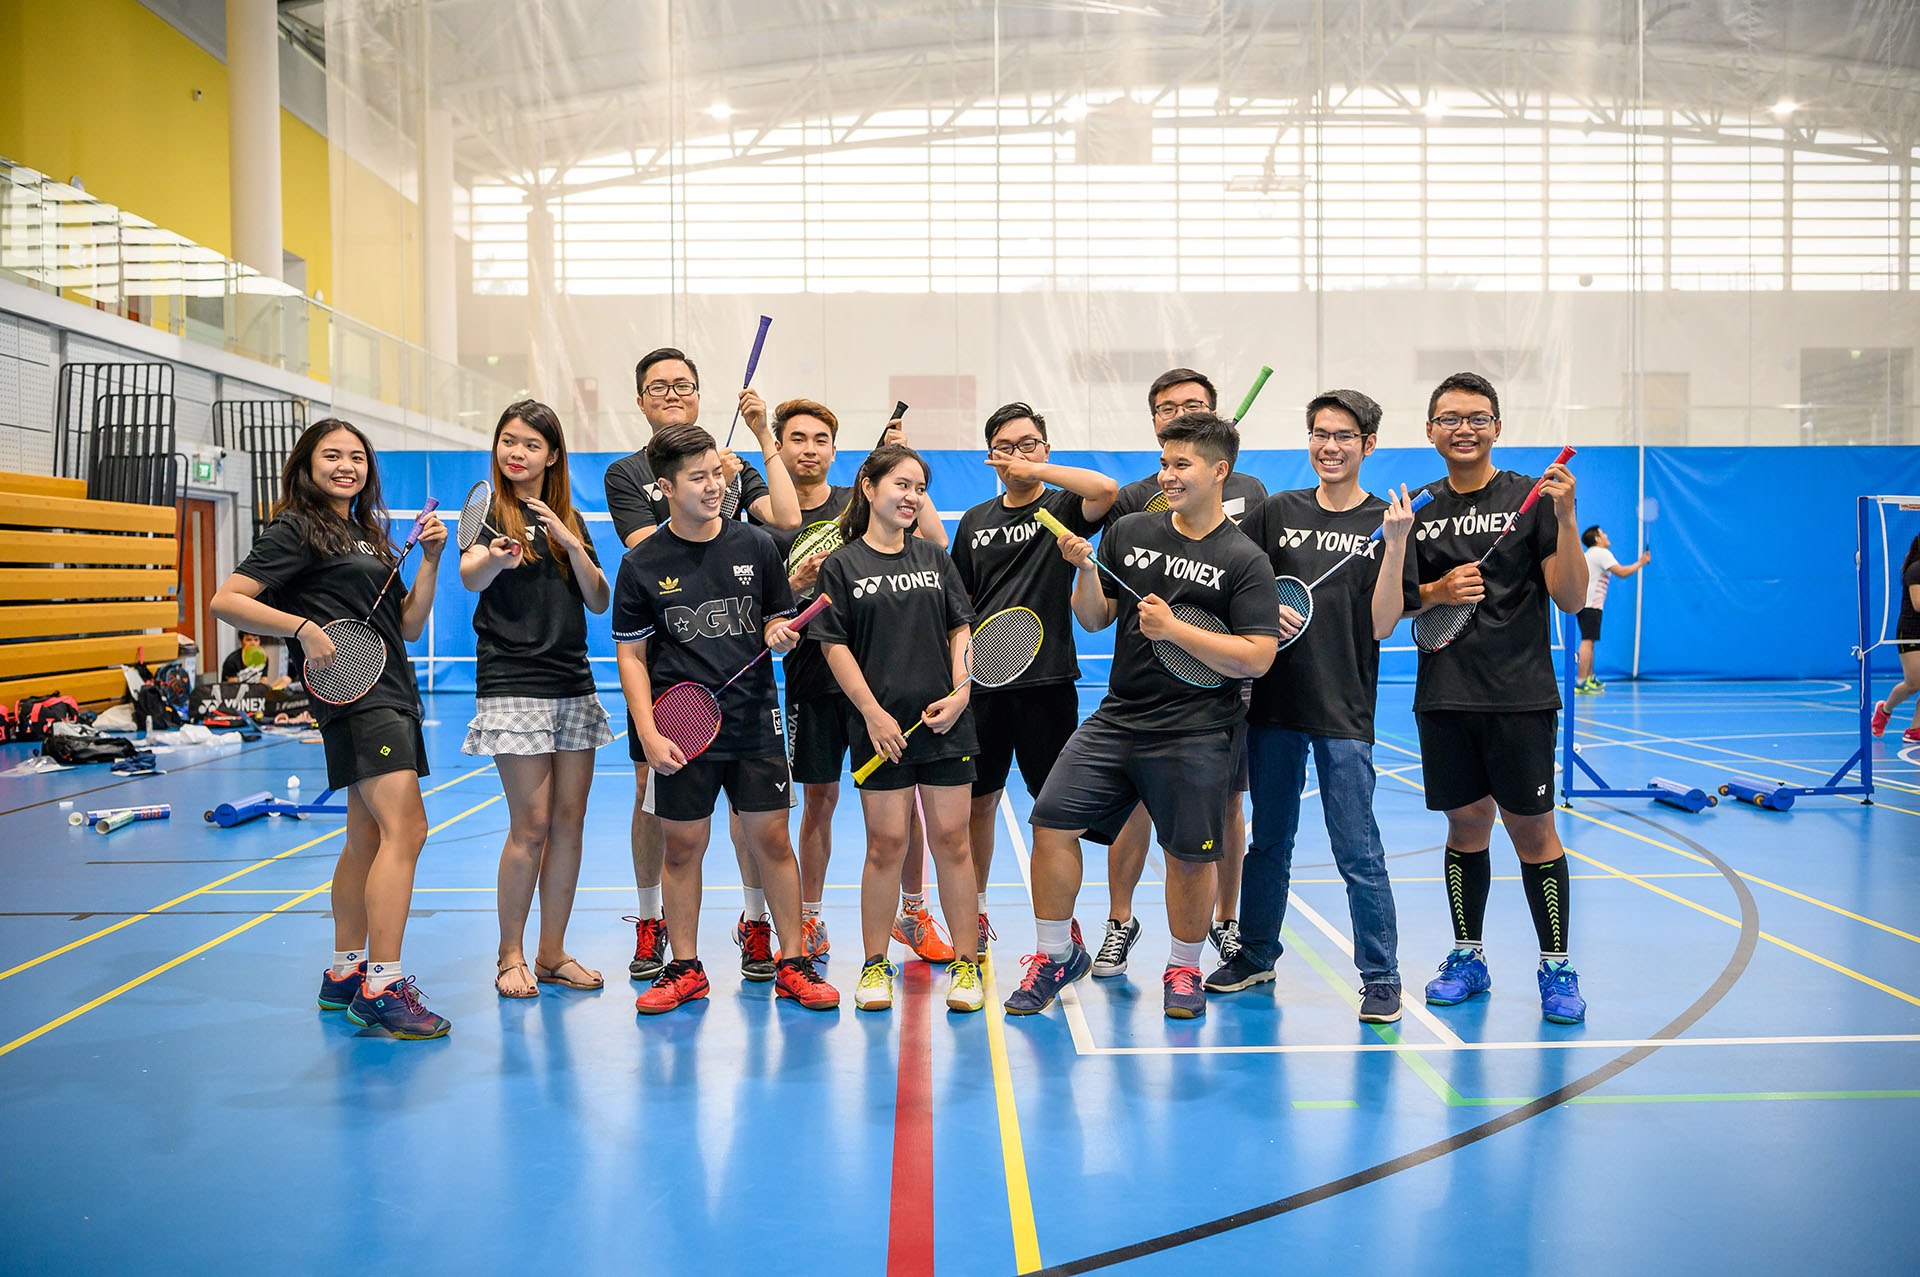 sgs badminton club